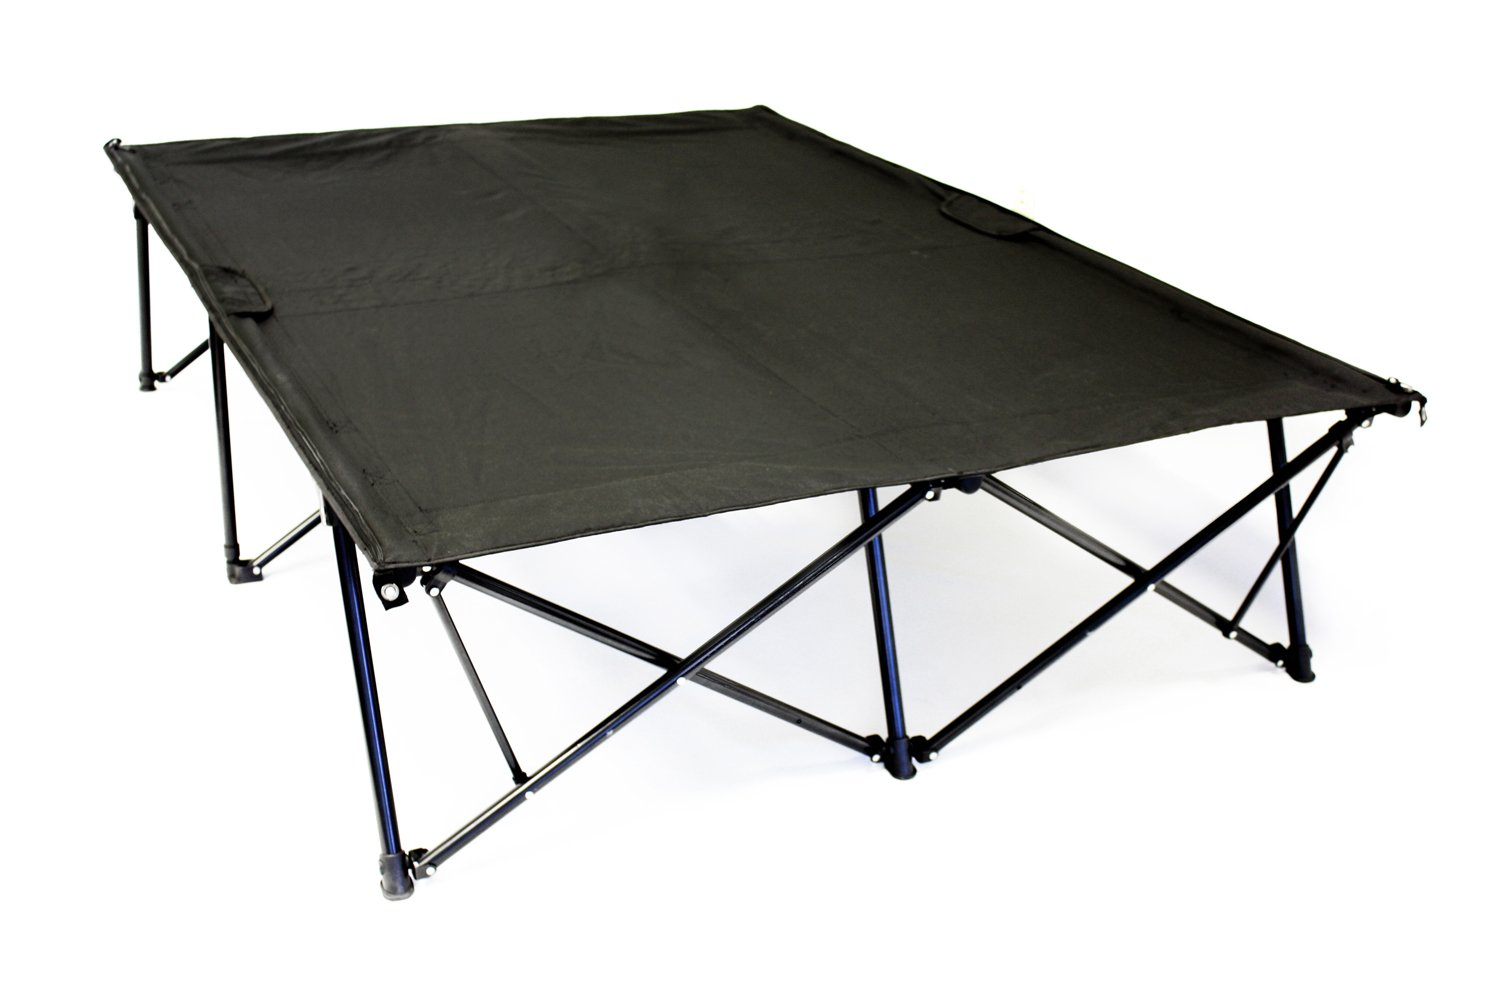 Double Camp Bed Sleeping Outdoor Travel Portable Folding